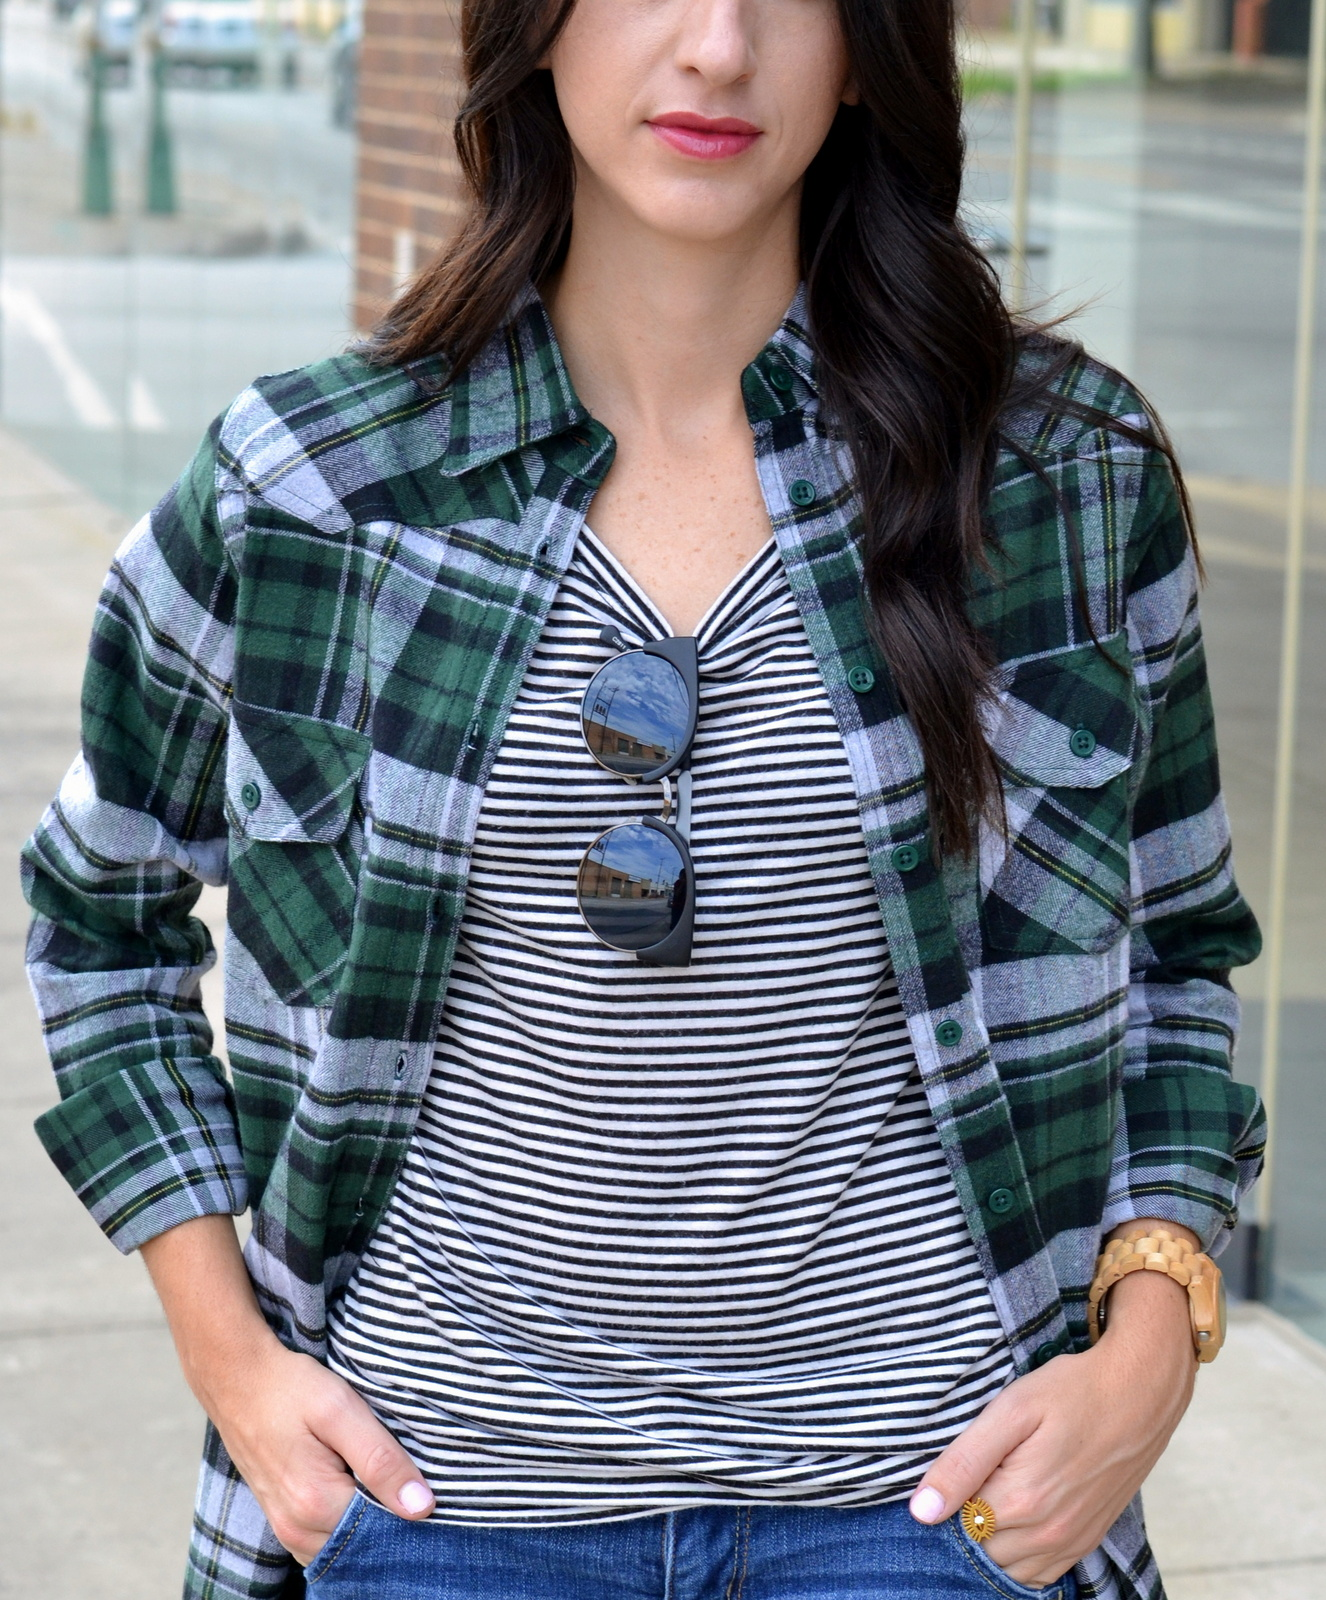 Fall bold lipstick, flannel, striped tee, fall outfit